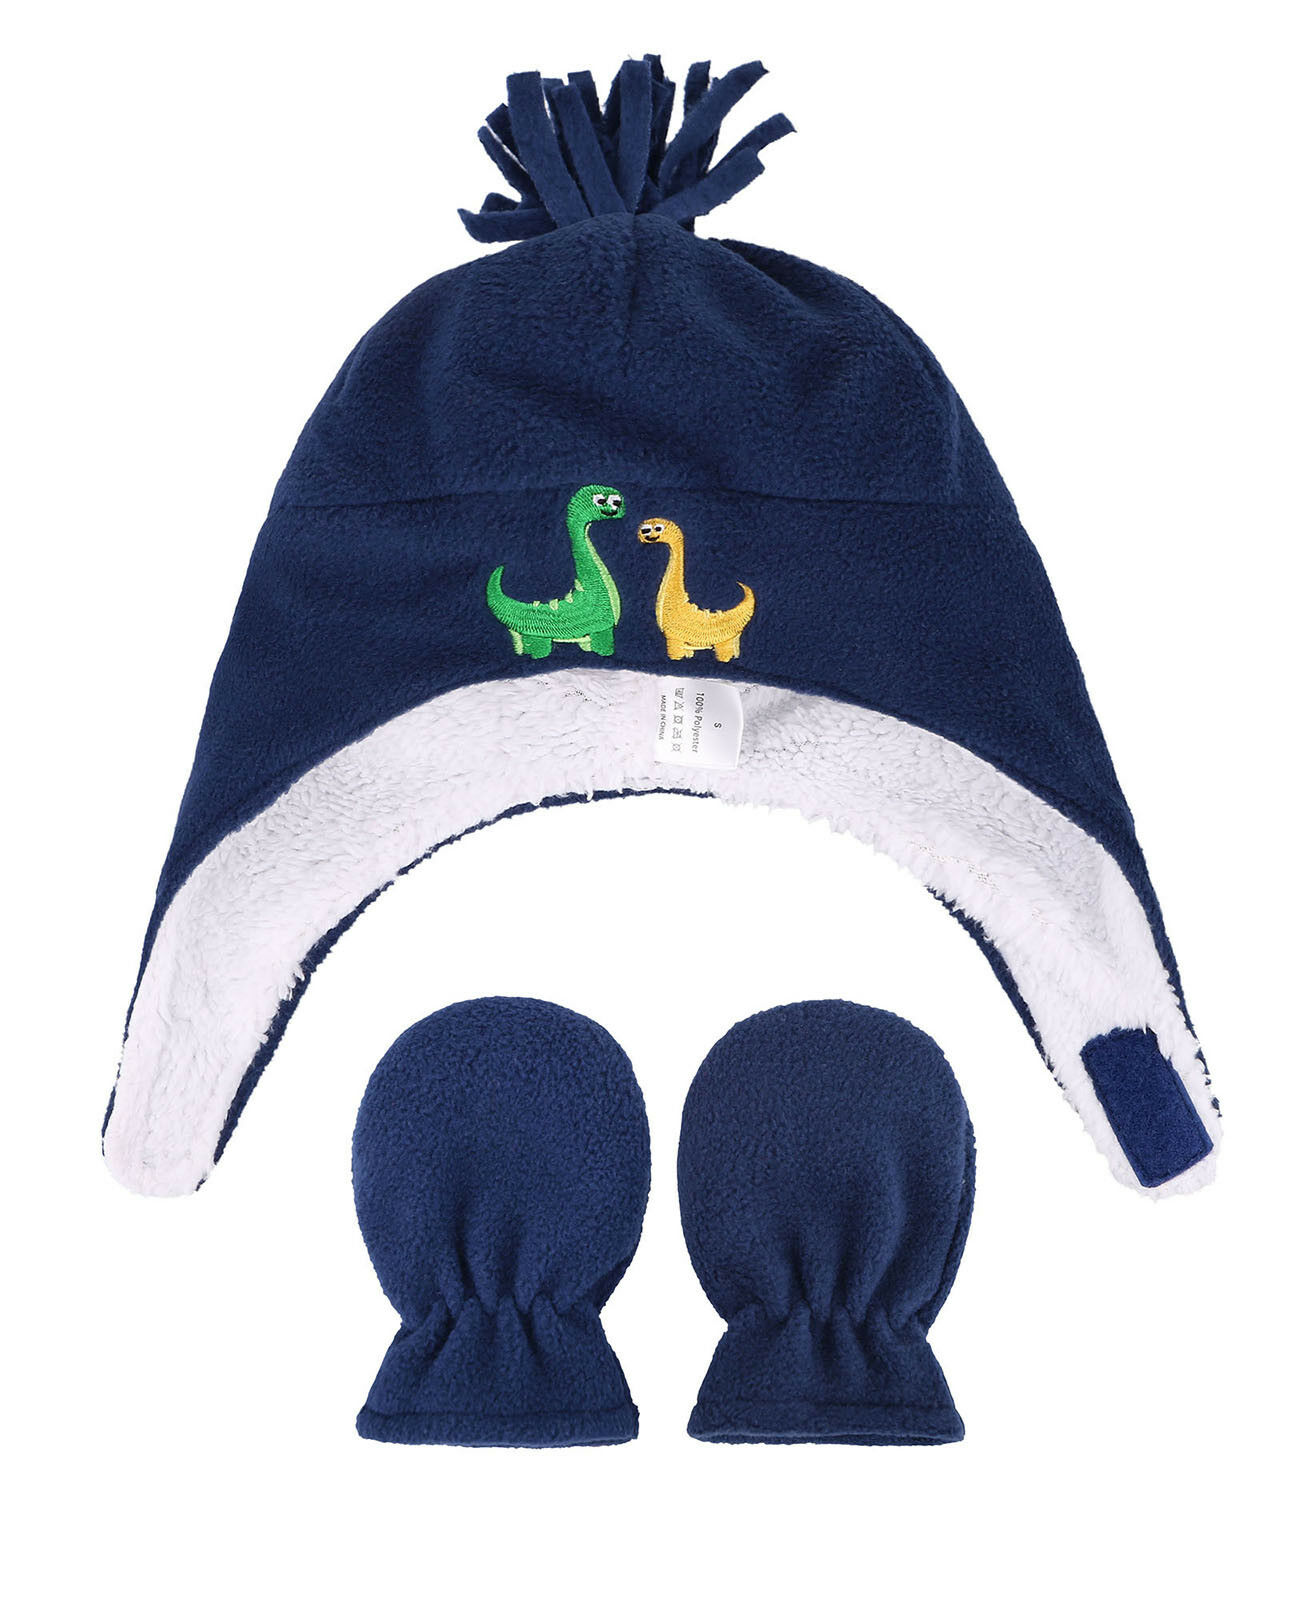 Kids Boys Girls Toddlers Sherpa Lined Embroidered Fleece Hat